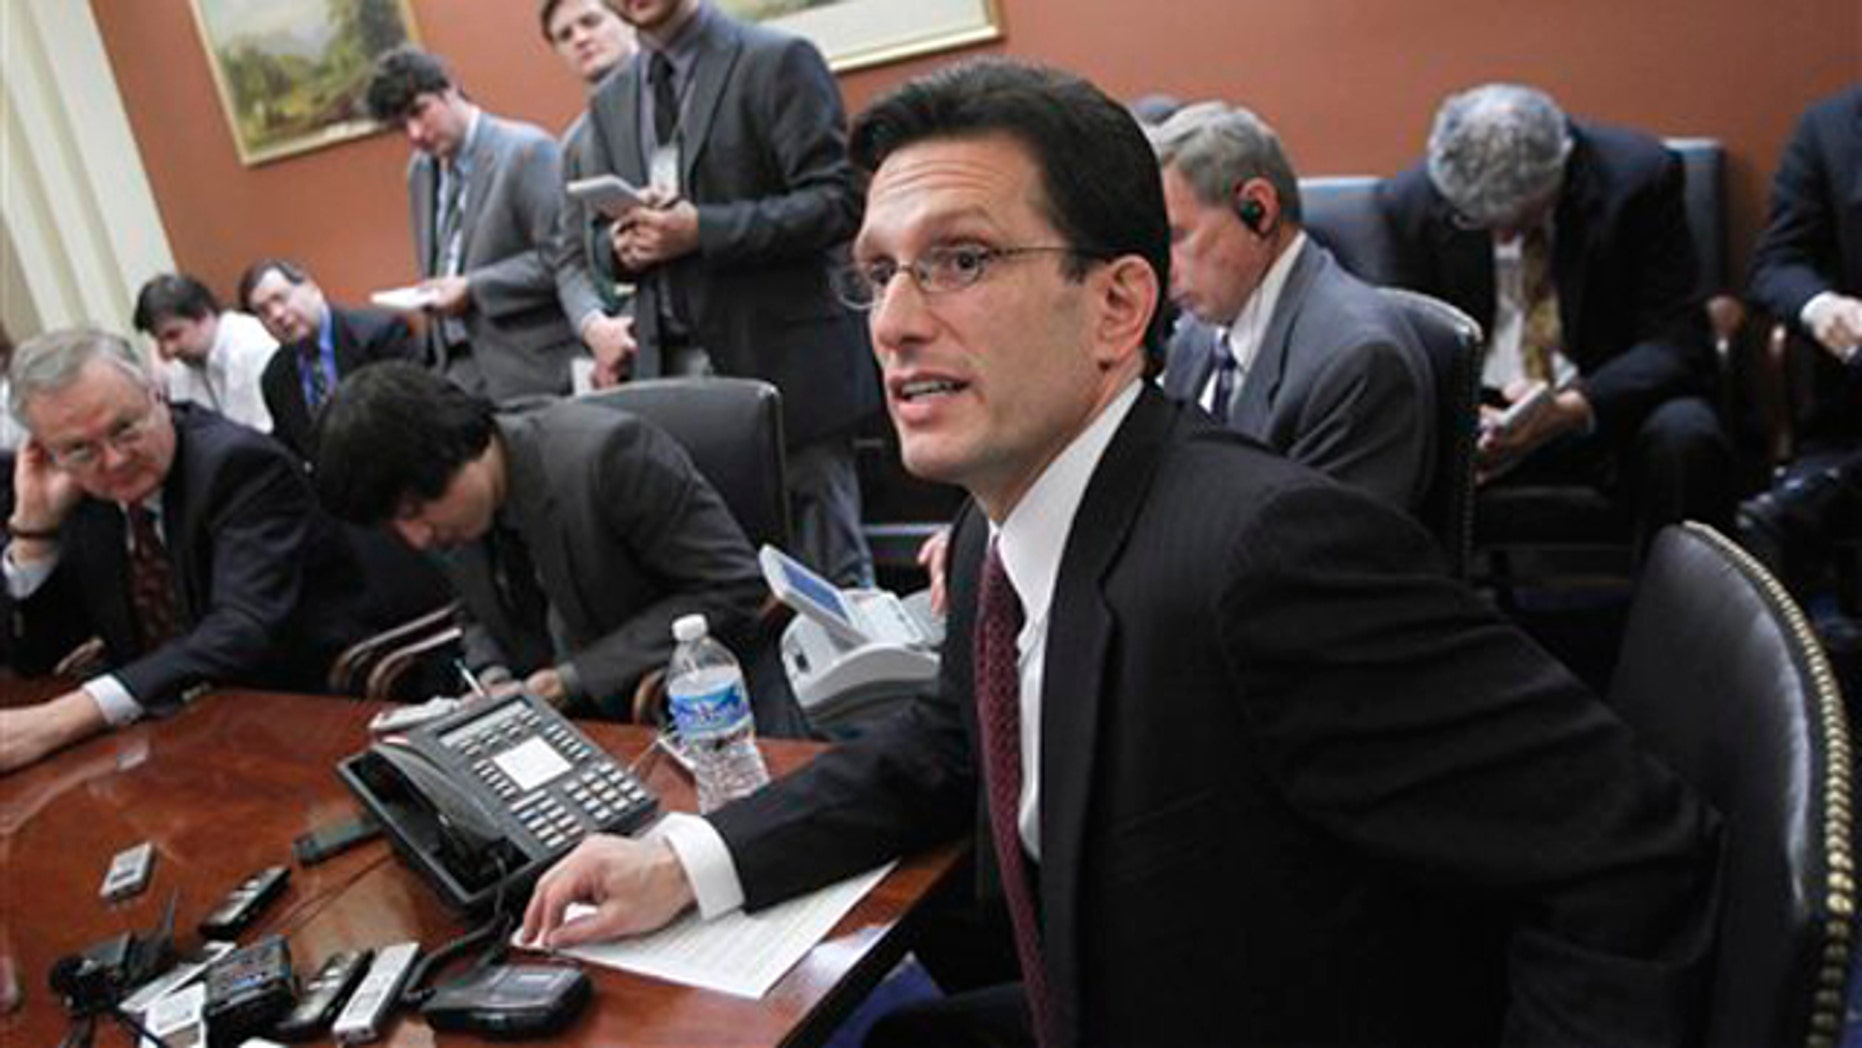 In this Feb. 28 file photo, House Majority Leader Eric Cantor speaks to reporters on Capitol Hill.